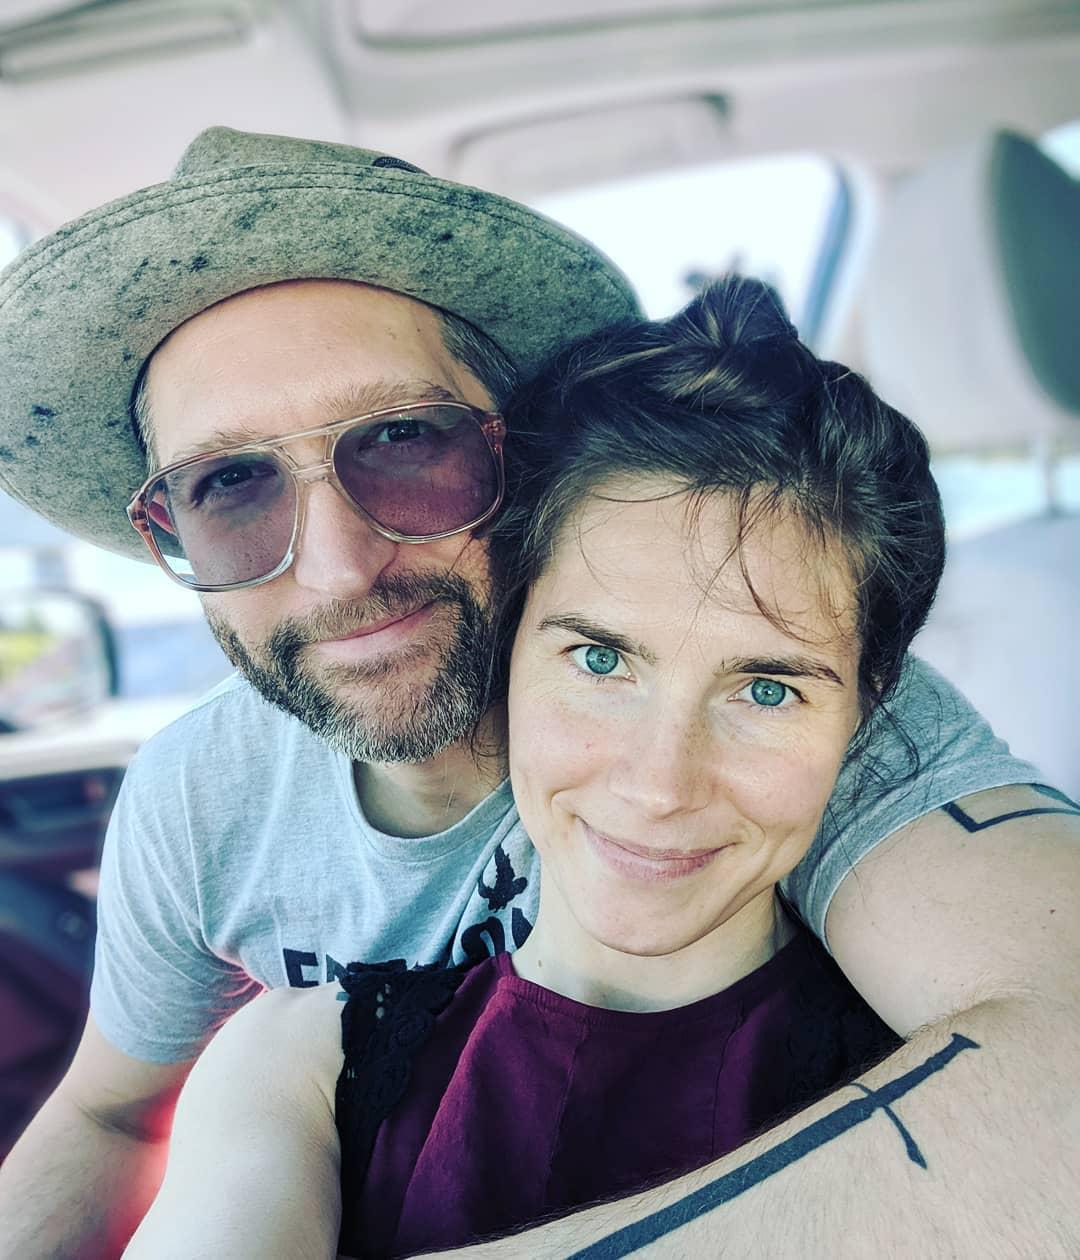 is-amanda-knox-married-1-1560457764997.jpg